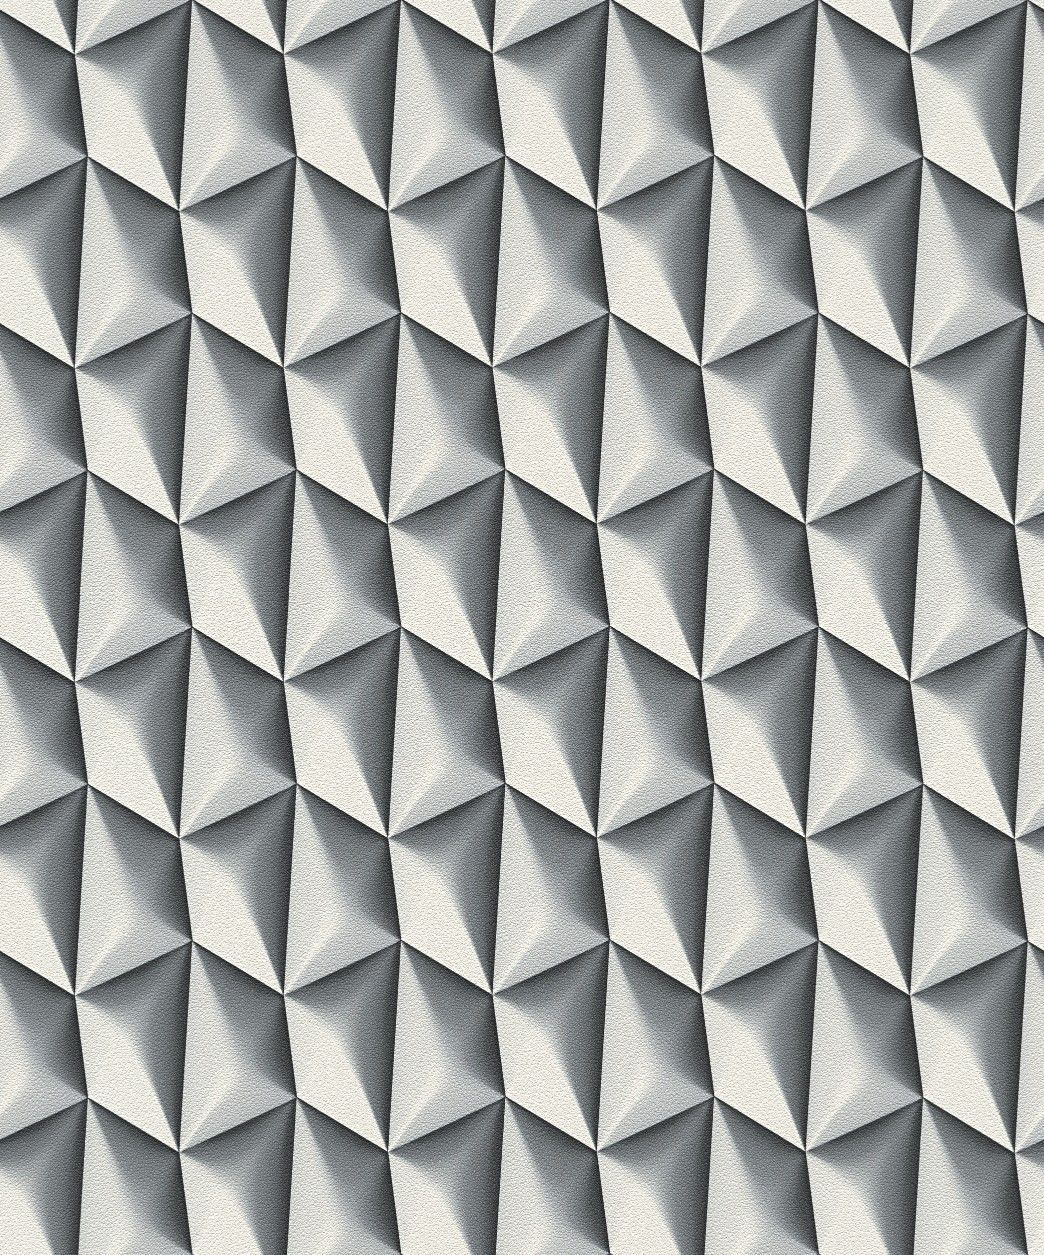 harmony in motion young and contemporary 3d designs wall paper black grey metallic 327082